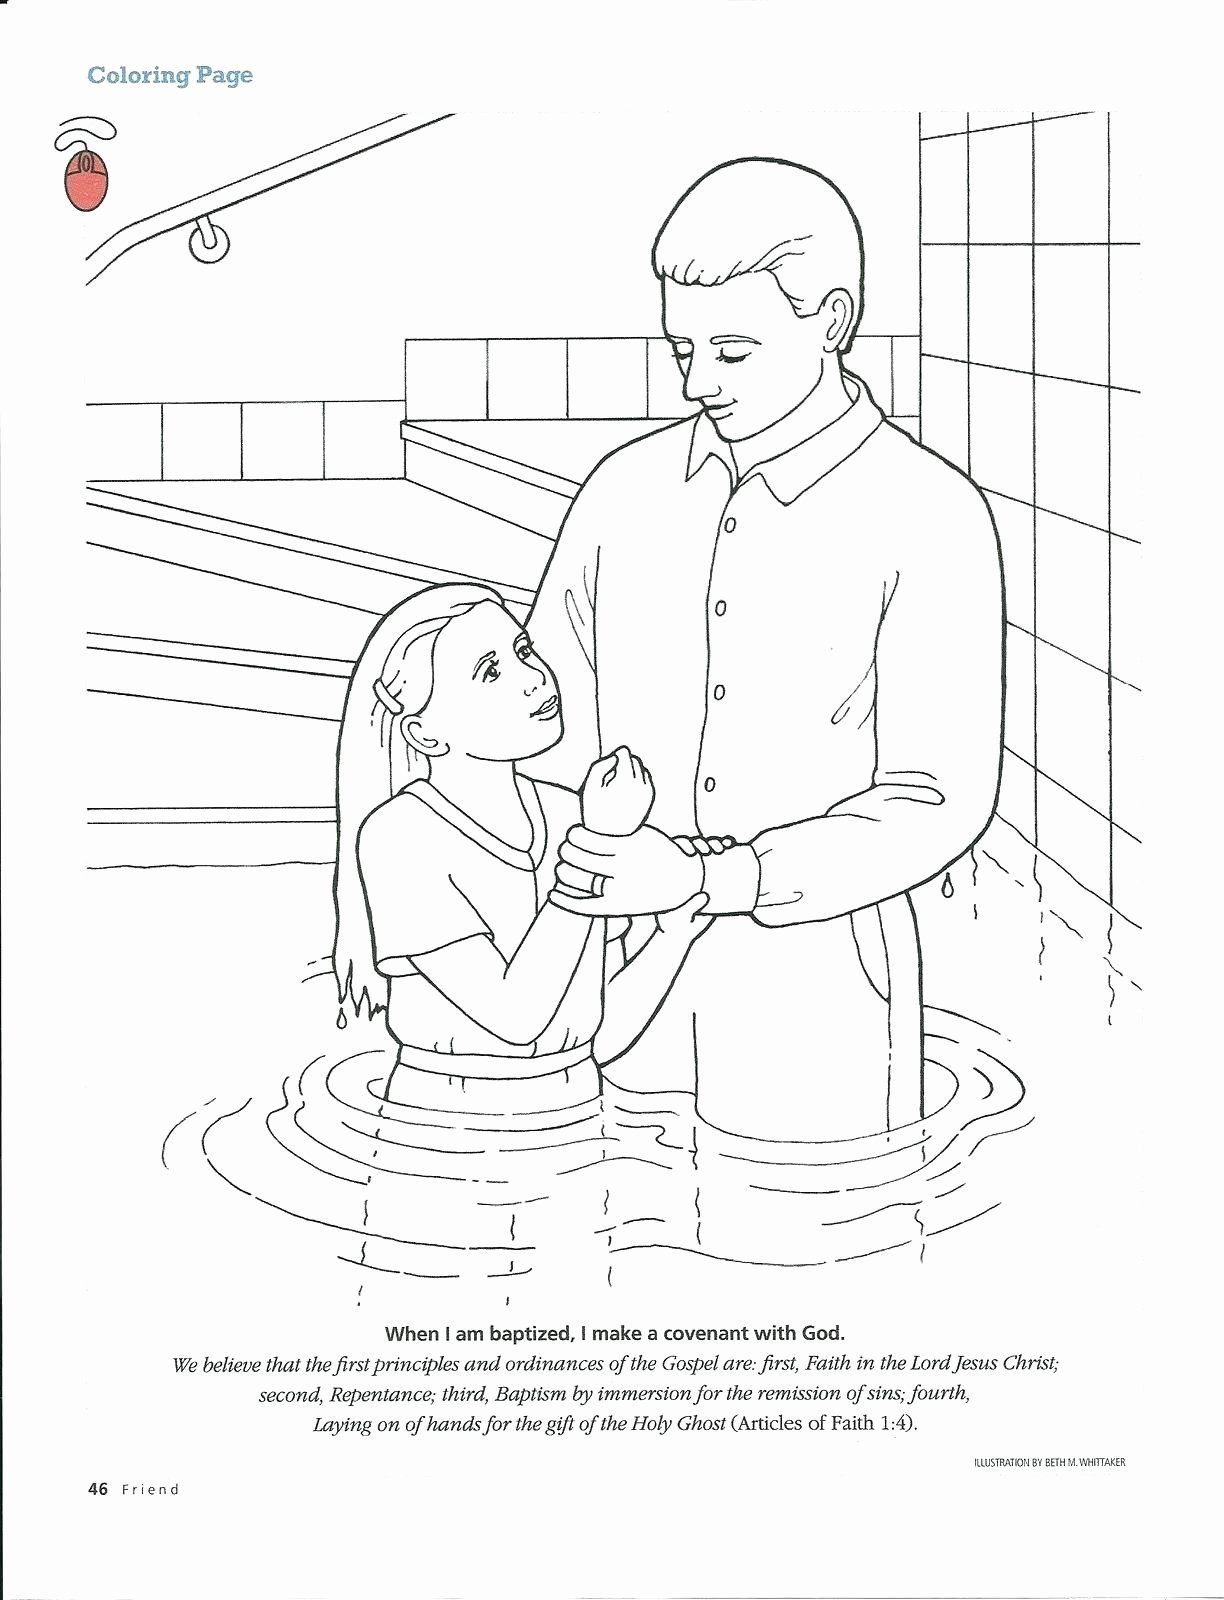 Coloring Page Fruits Of The Spirit Lovely Jesus Sends The Holy